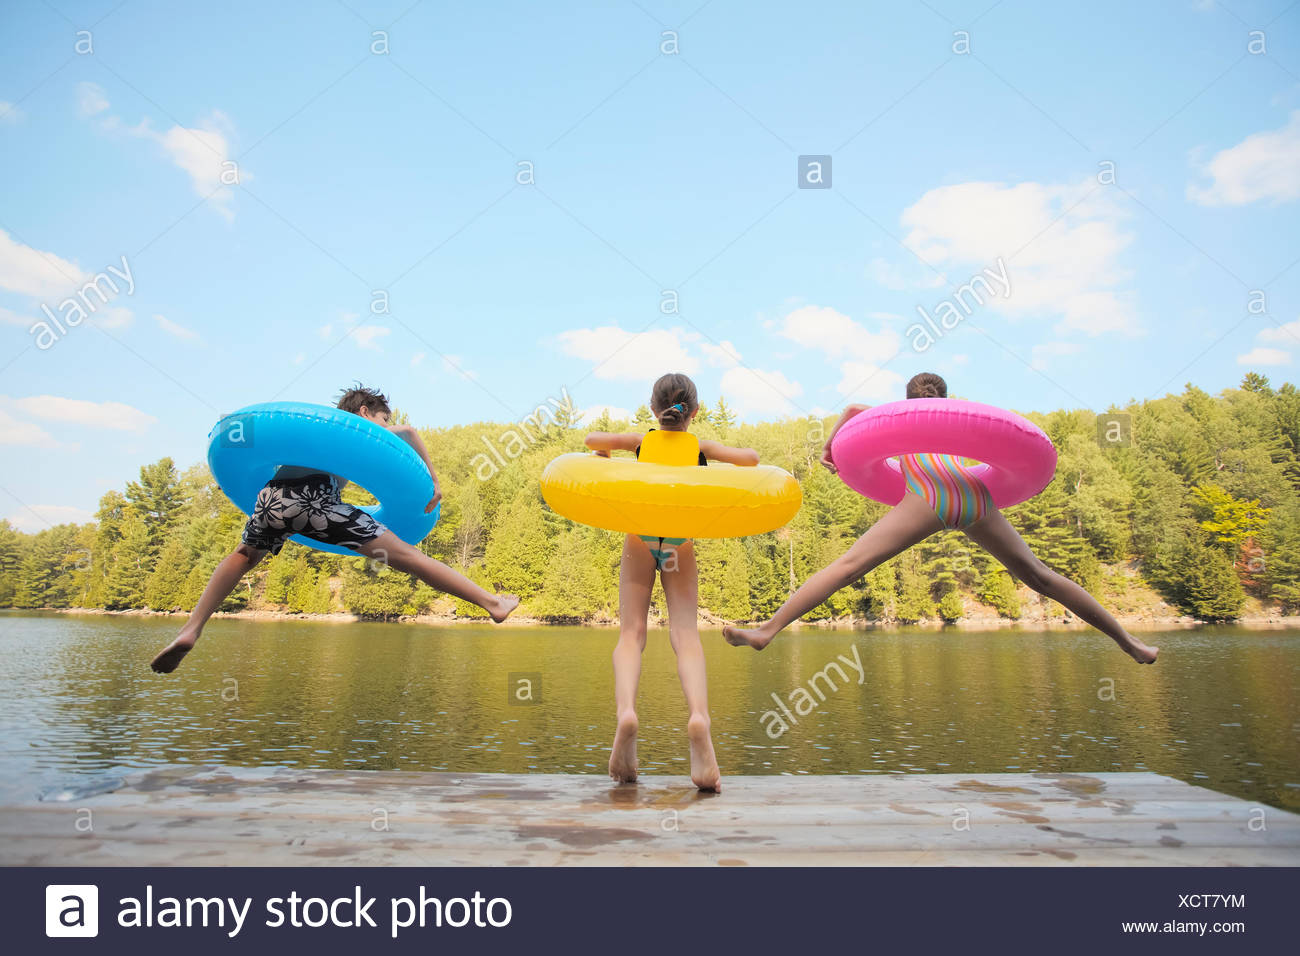 Inflatable,Lake,Jetty,Rubber Ring,Girl,Boy - Stock Image